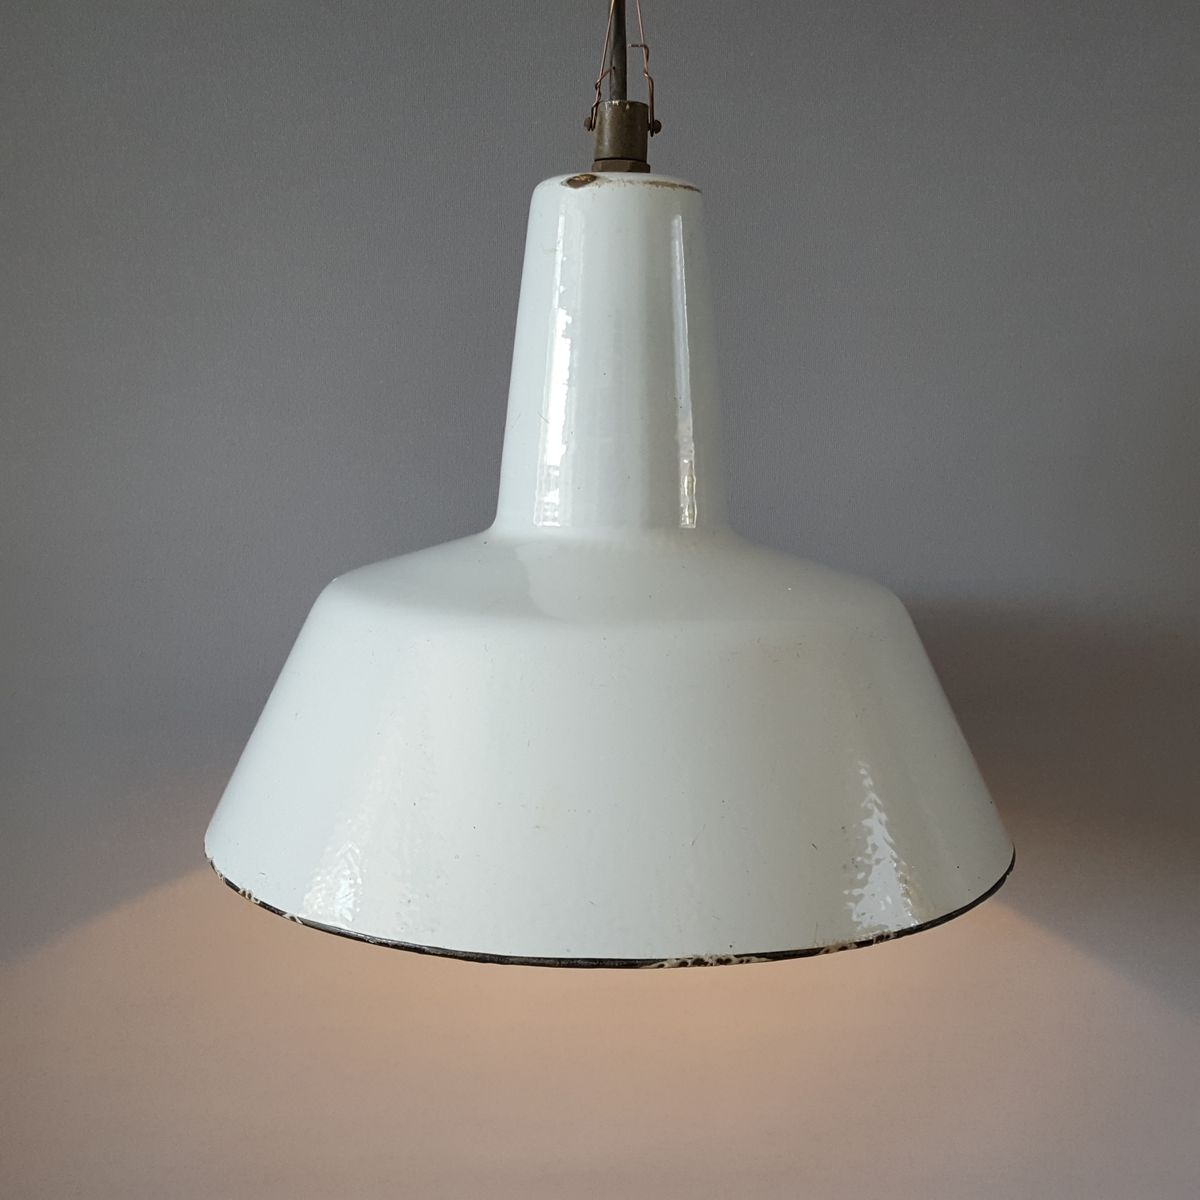 Lampe suspension vintage industrielle en mail en vente sur pamono - Lampe suspension industrielle ...